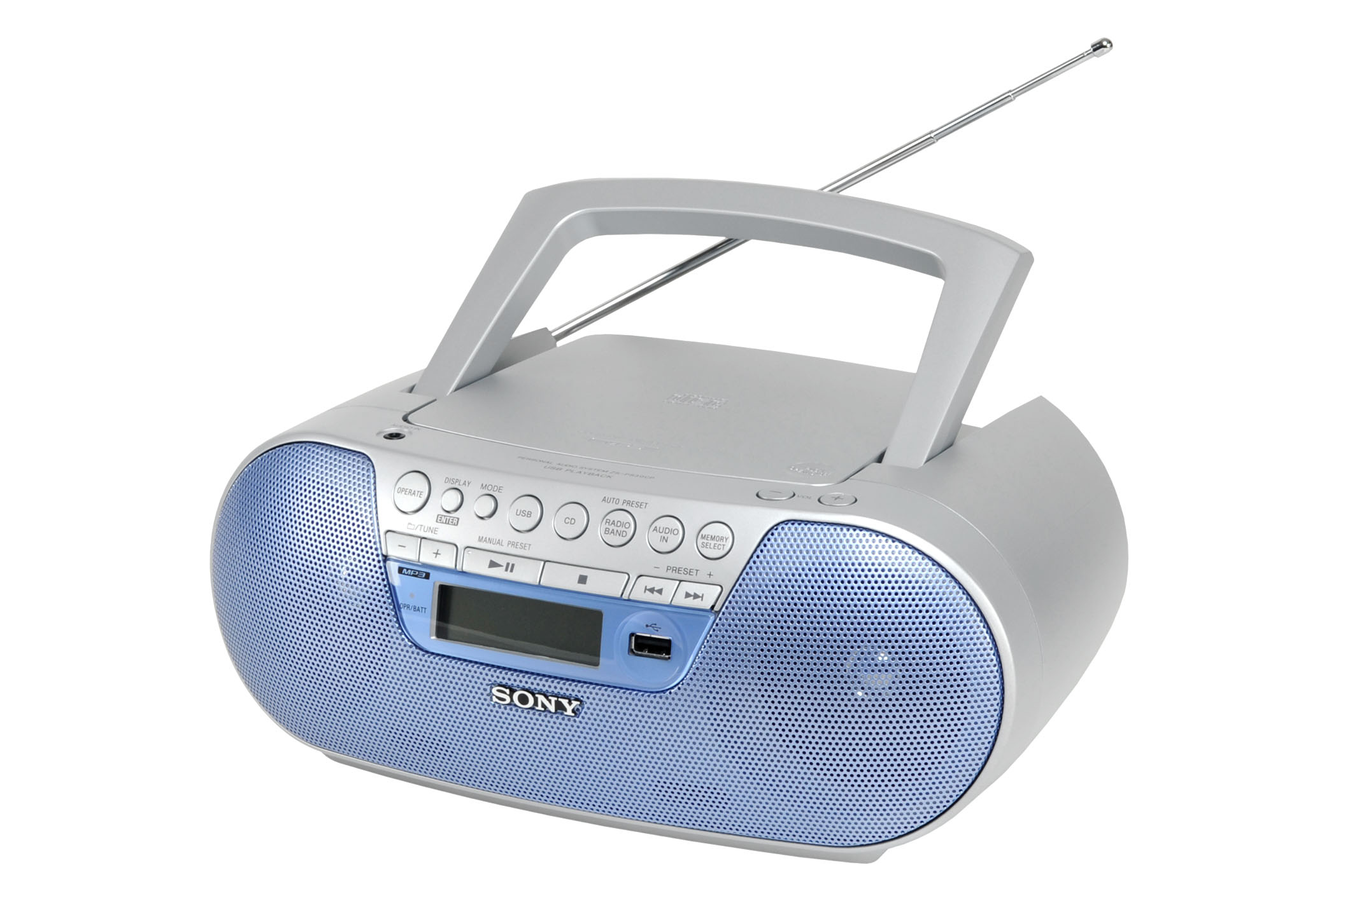 radio cd radio k7 cd sony zs ps30cpl zsps30cpl ced 3696995 darty. Black Bedroom Furniture Sets. Home Design Ideas